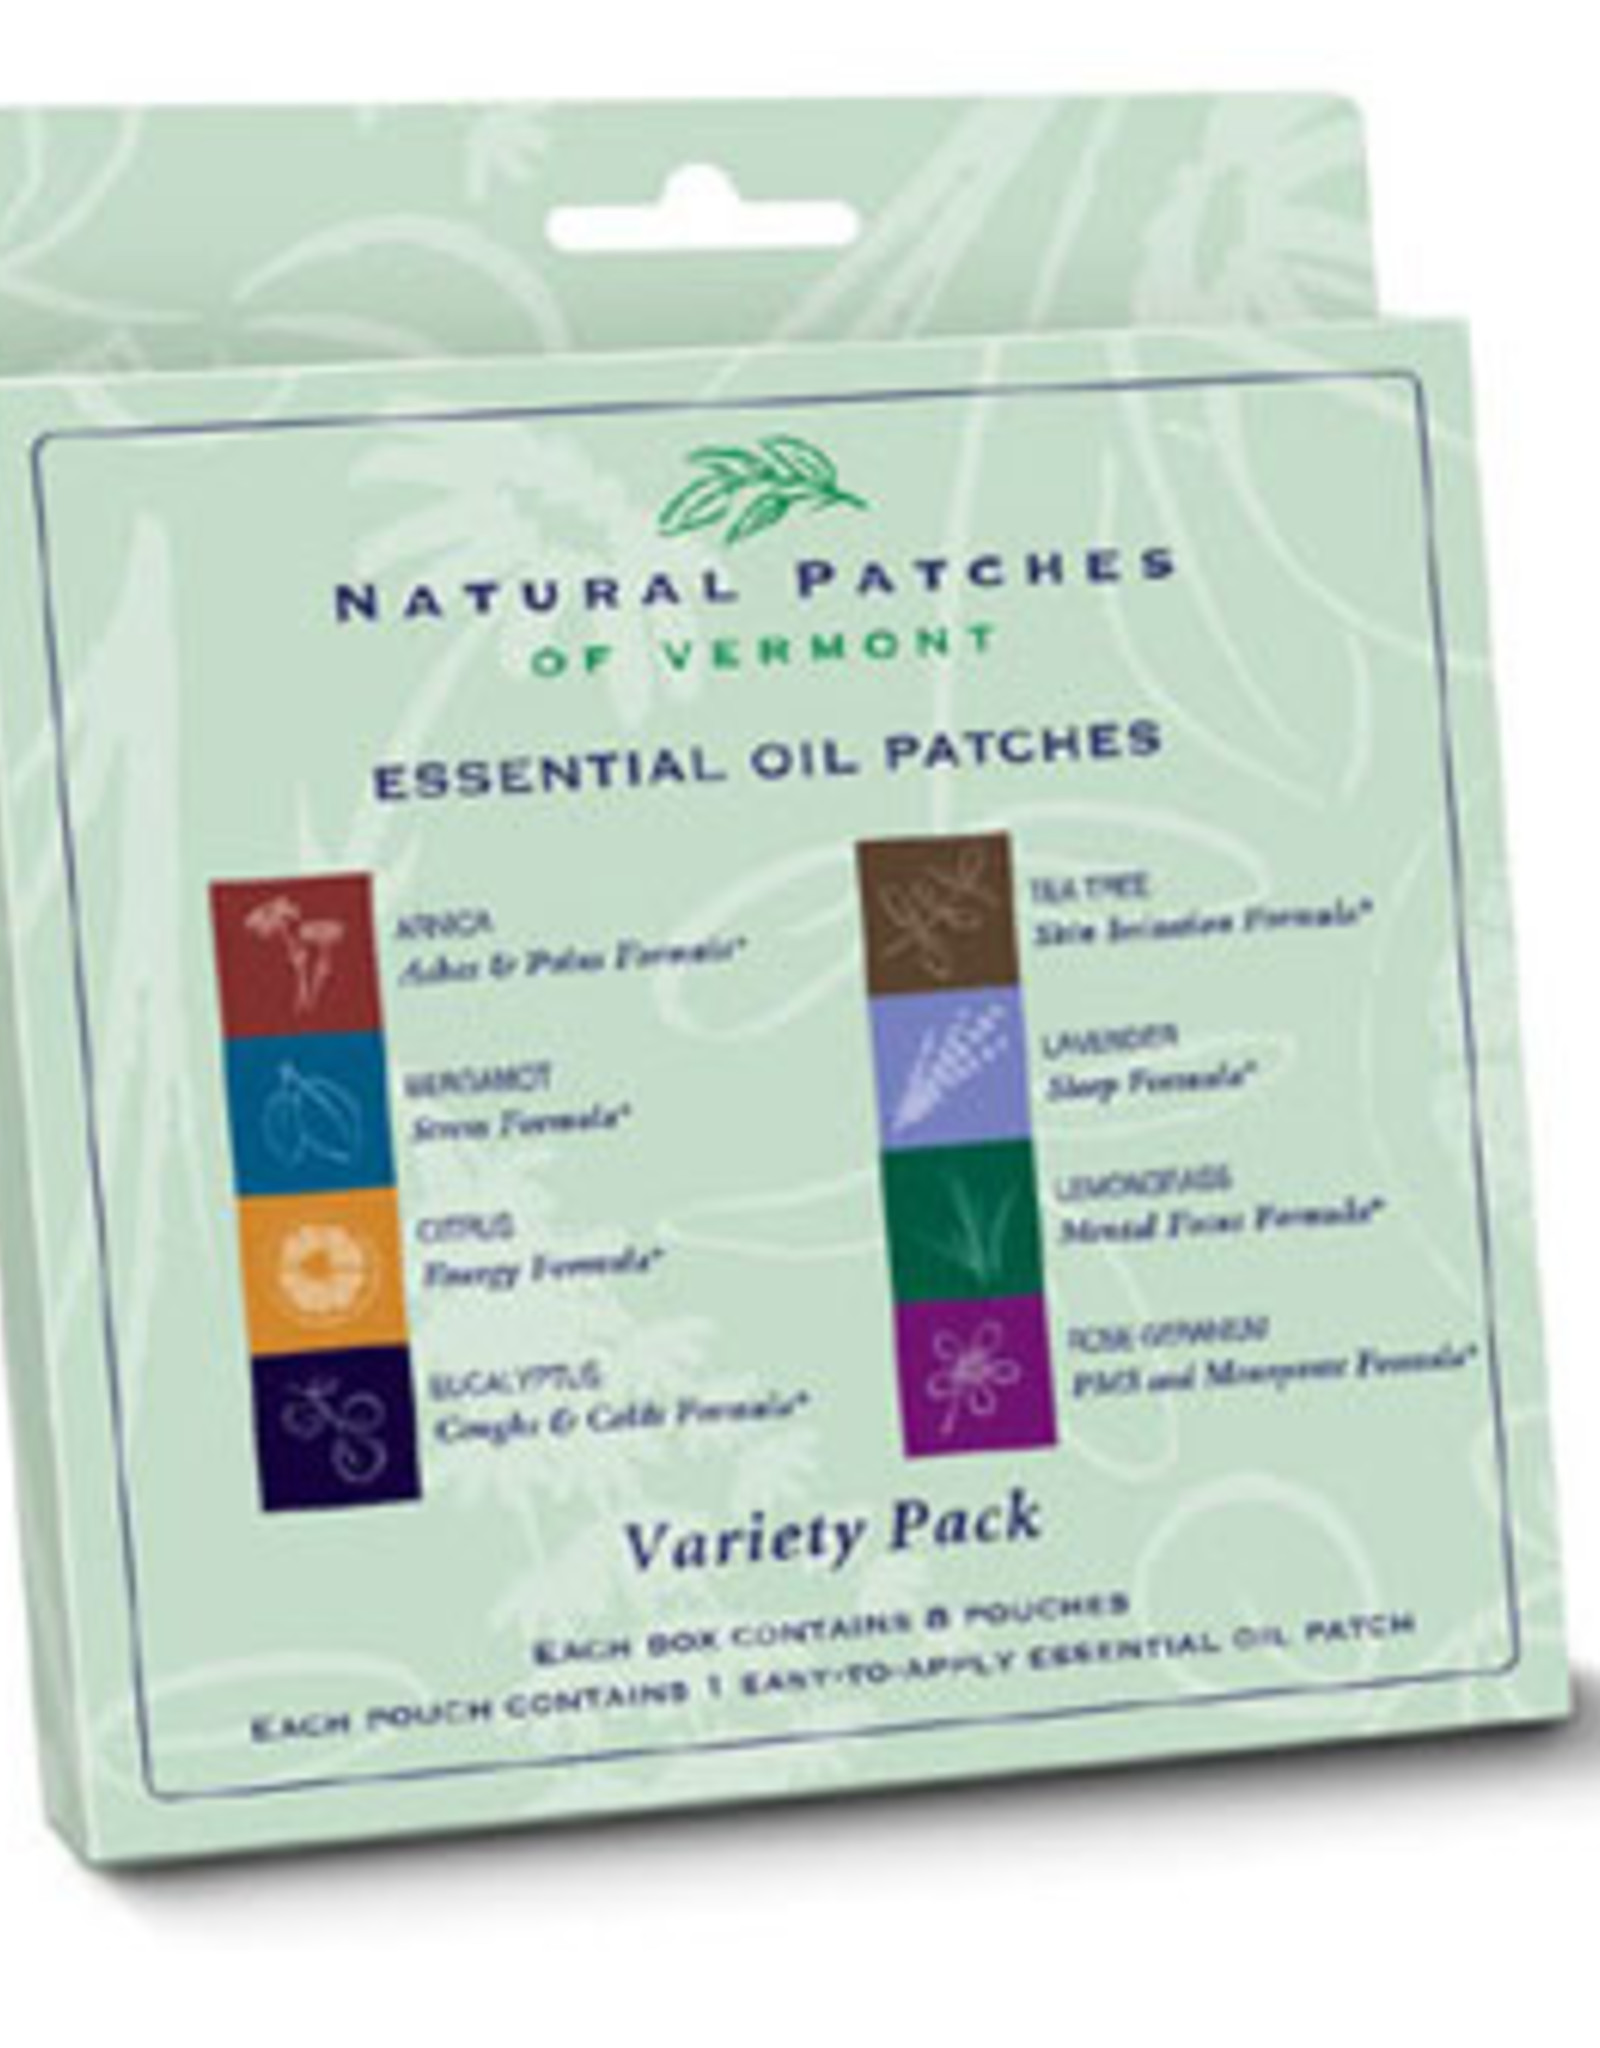 Natural Patches of Vermont Variety Pack *6